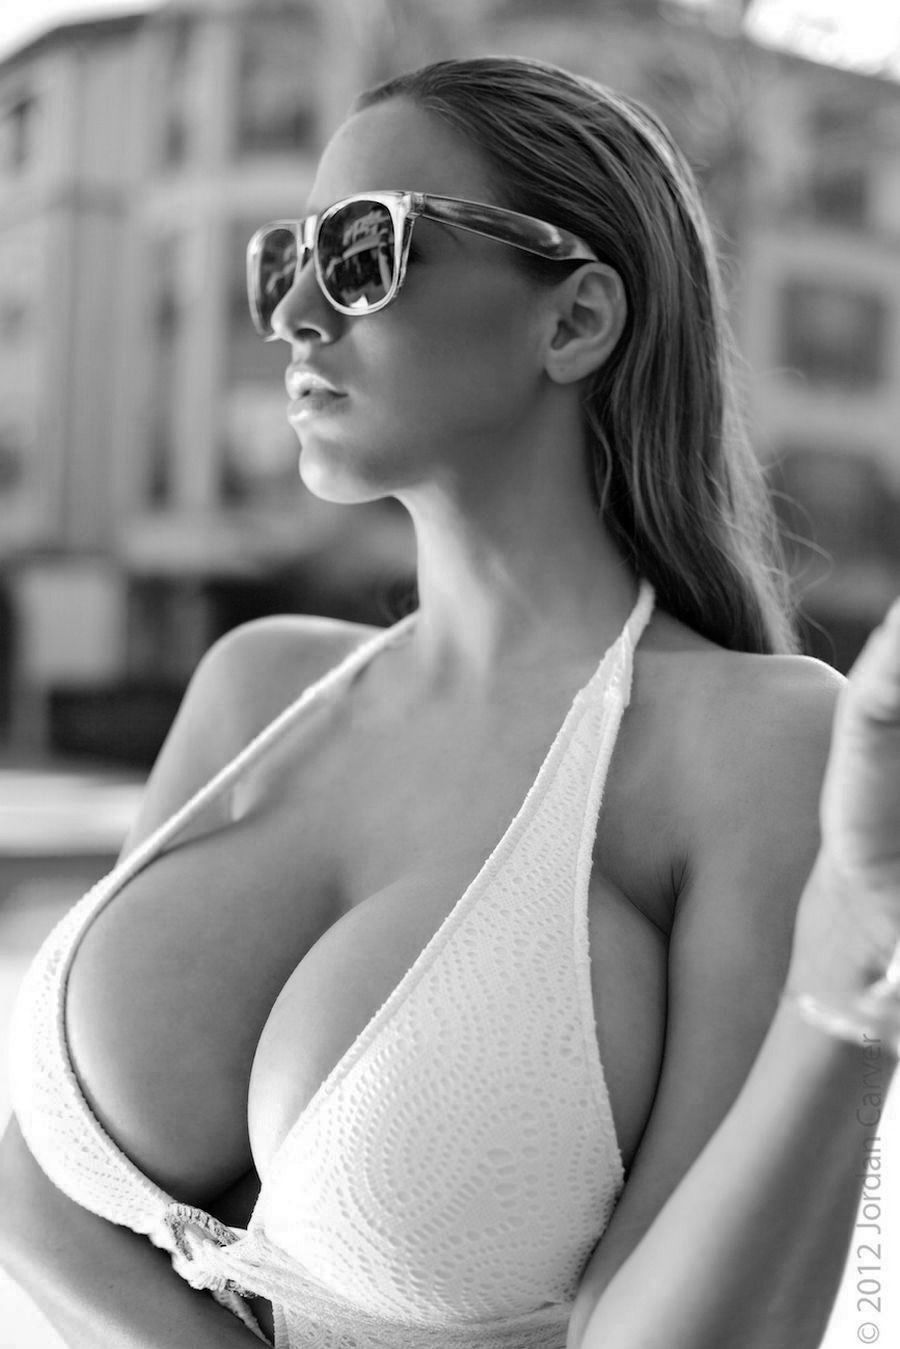 revealing shirt large breasts